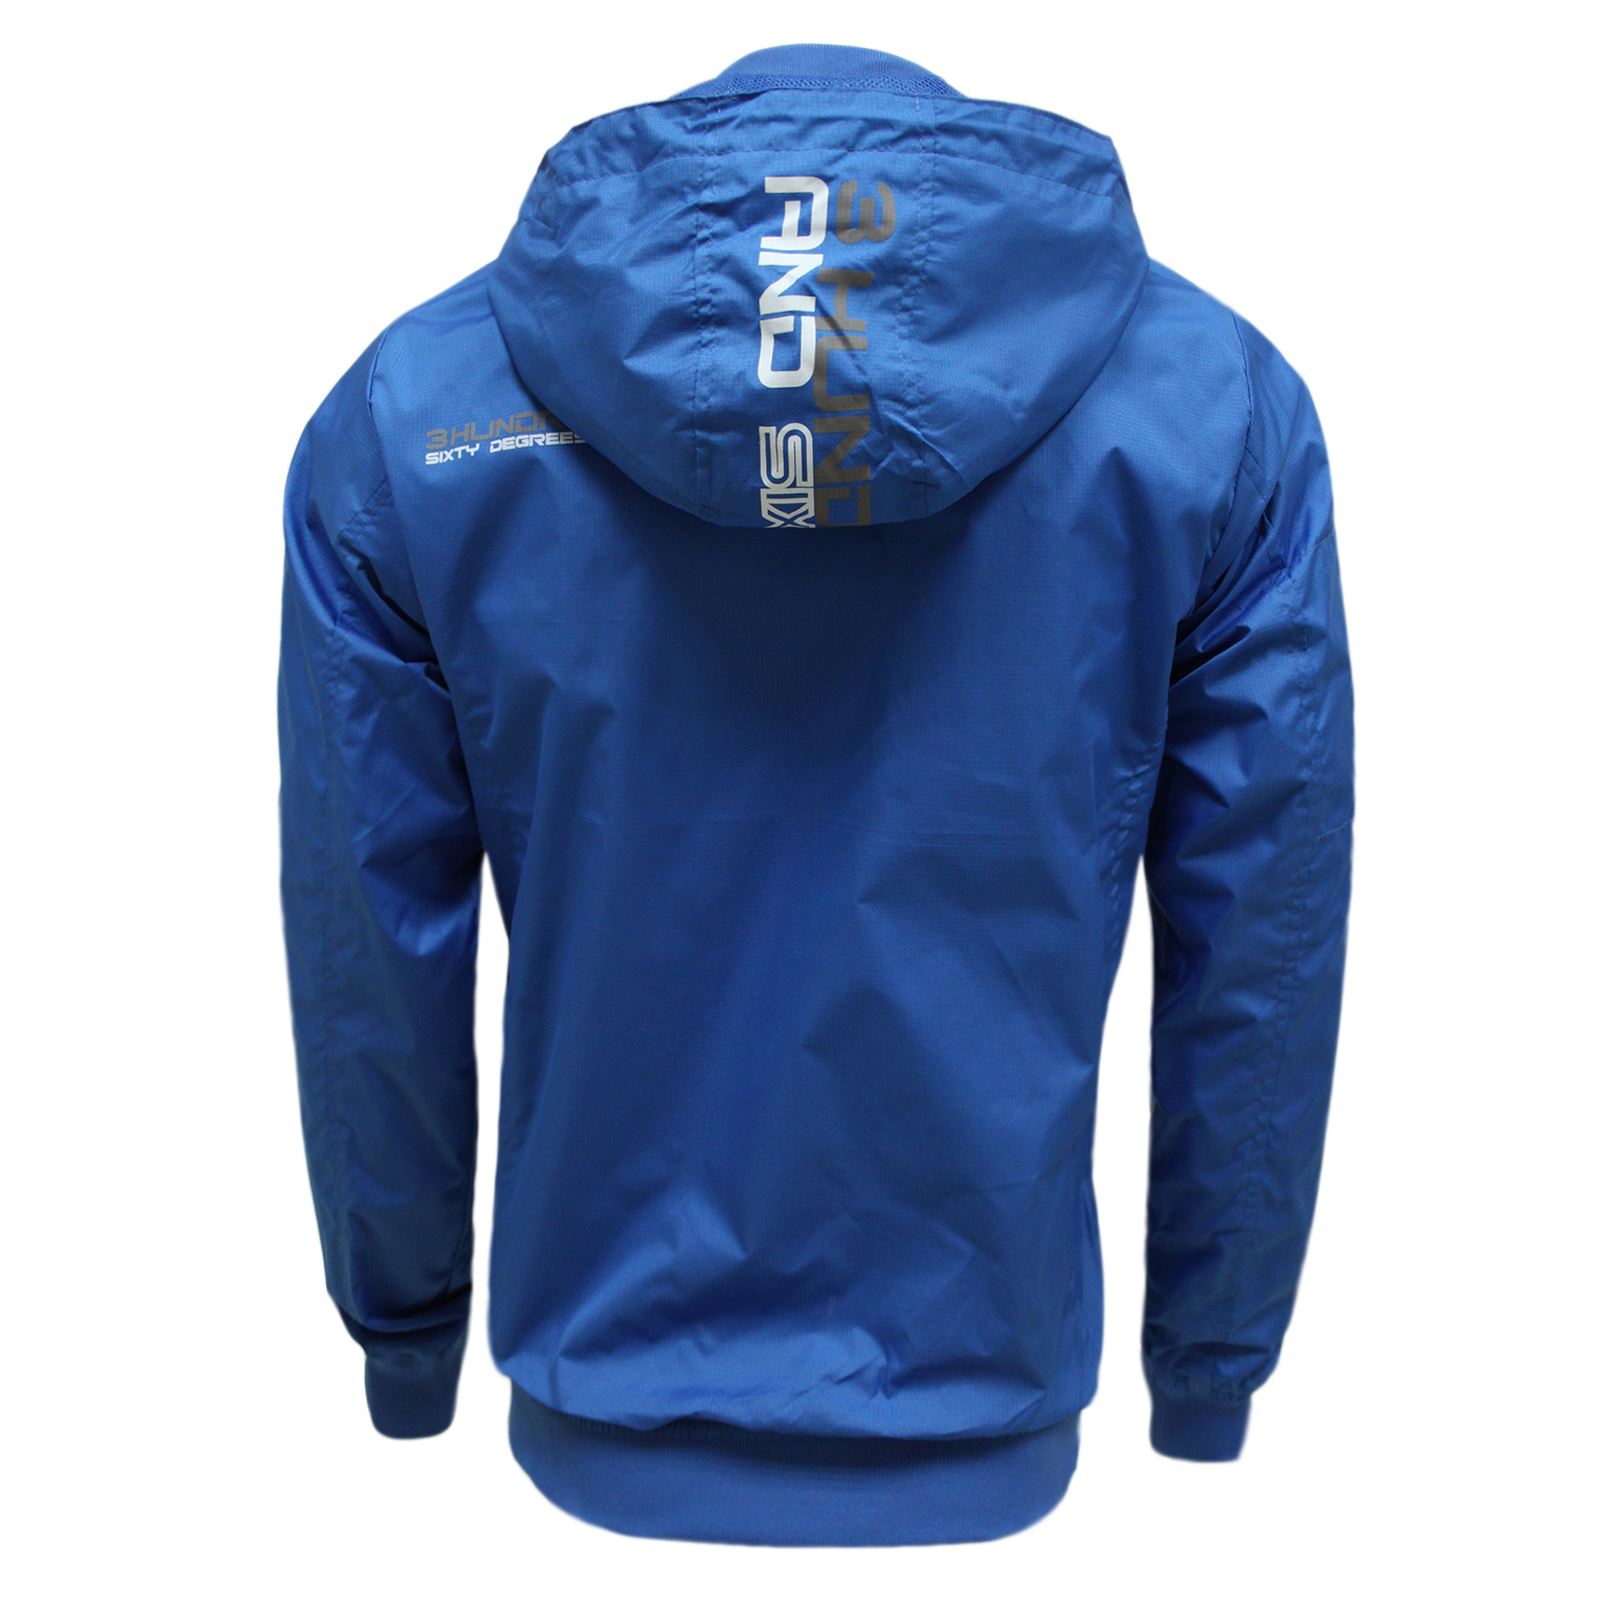 MENS LIGHTWEIGHT WINDBREAKER WATER PROOF SUMMER JACKET HOODED ...